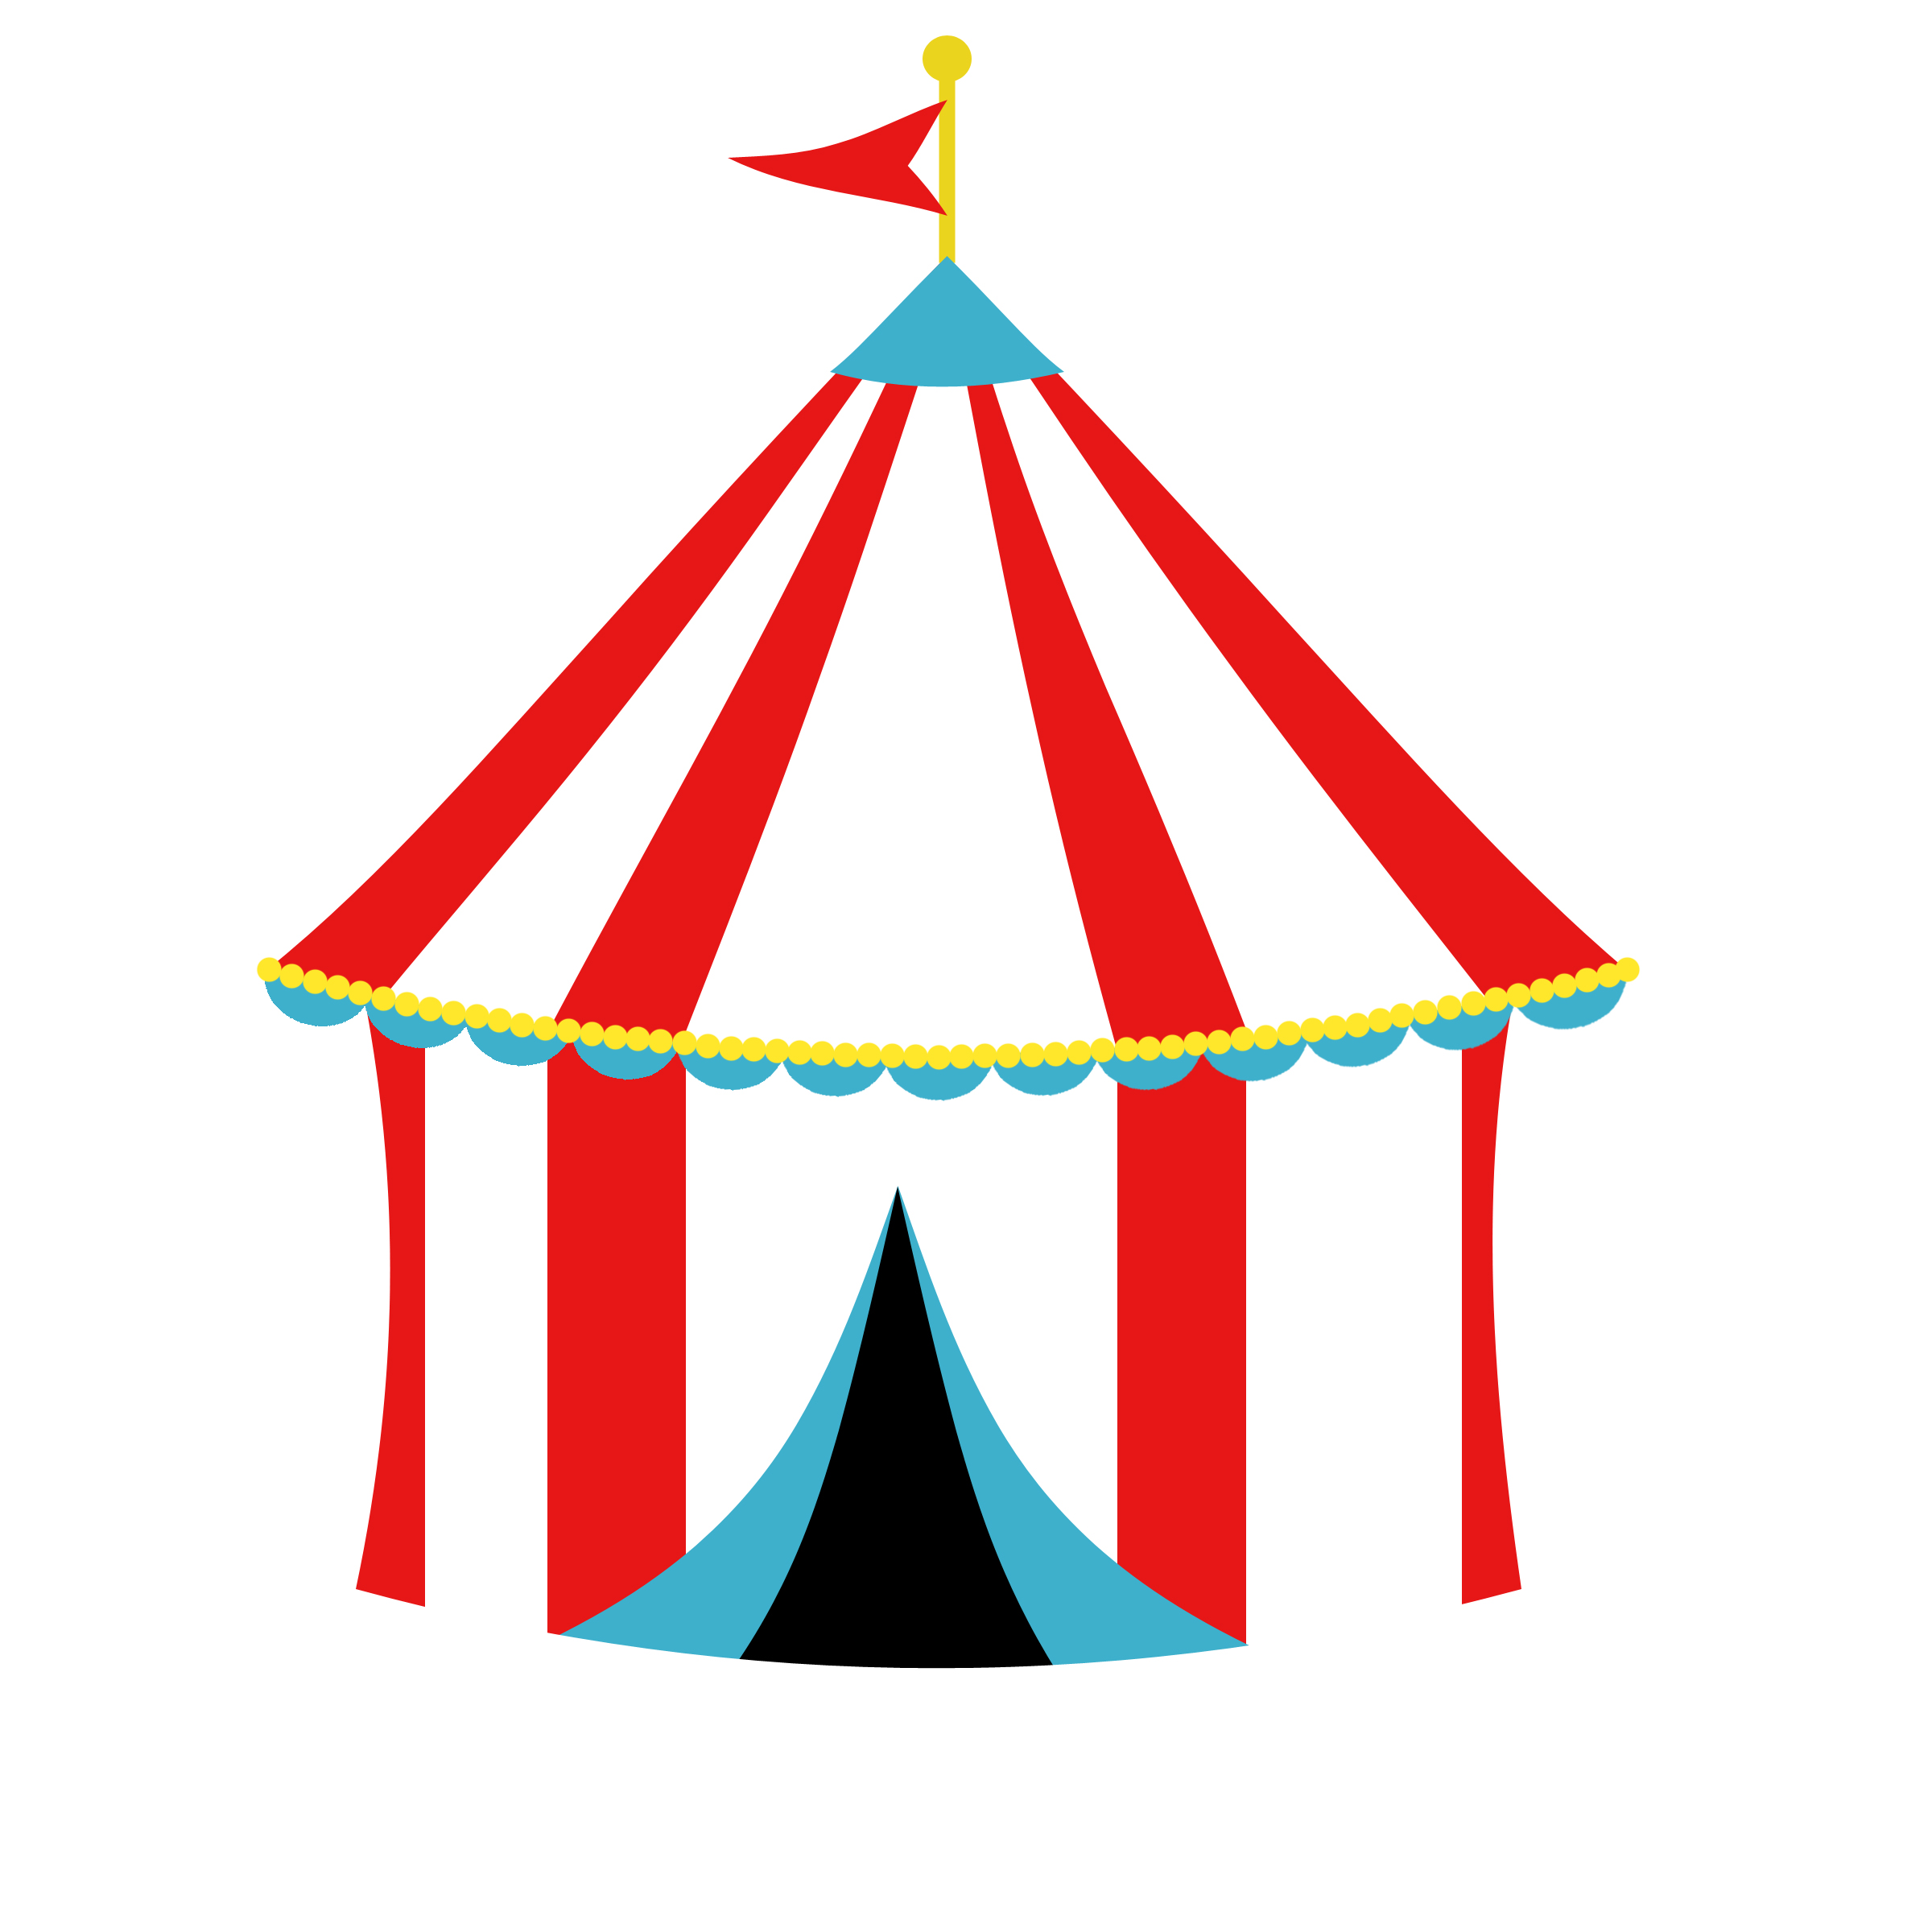 2400x2400 59 A Circus Tent, Circus Tent Related Keywords Suggestions Circus